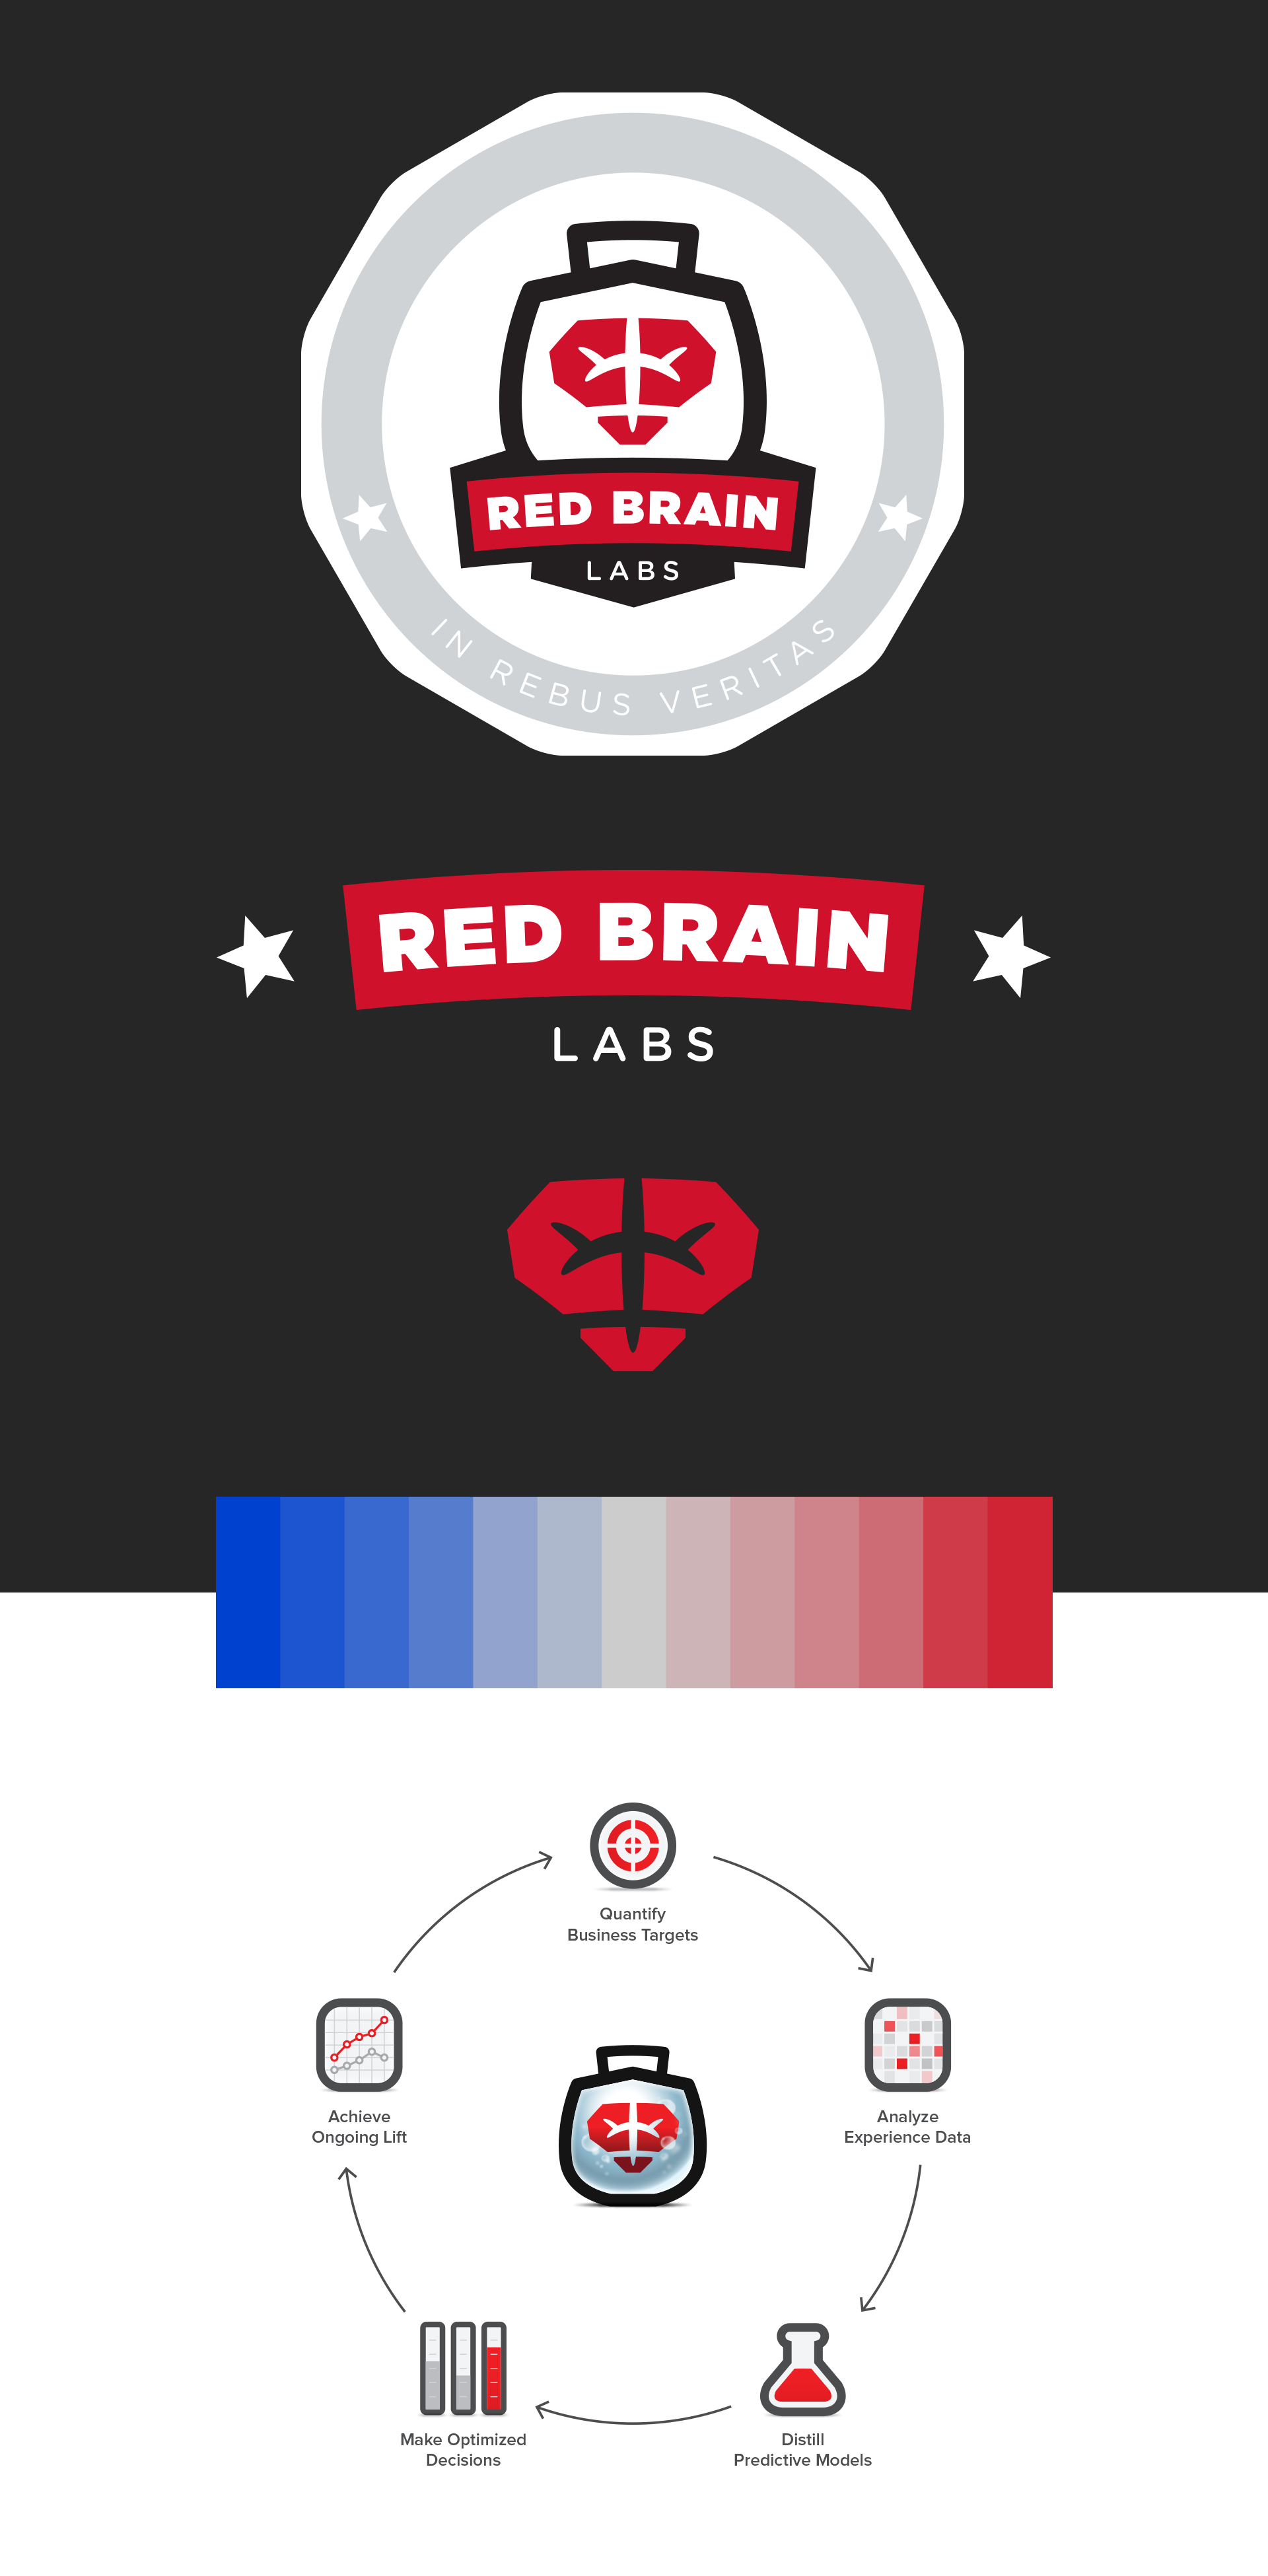 Red Brain Labs Brand Identity